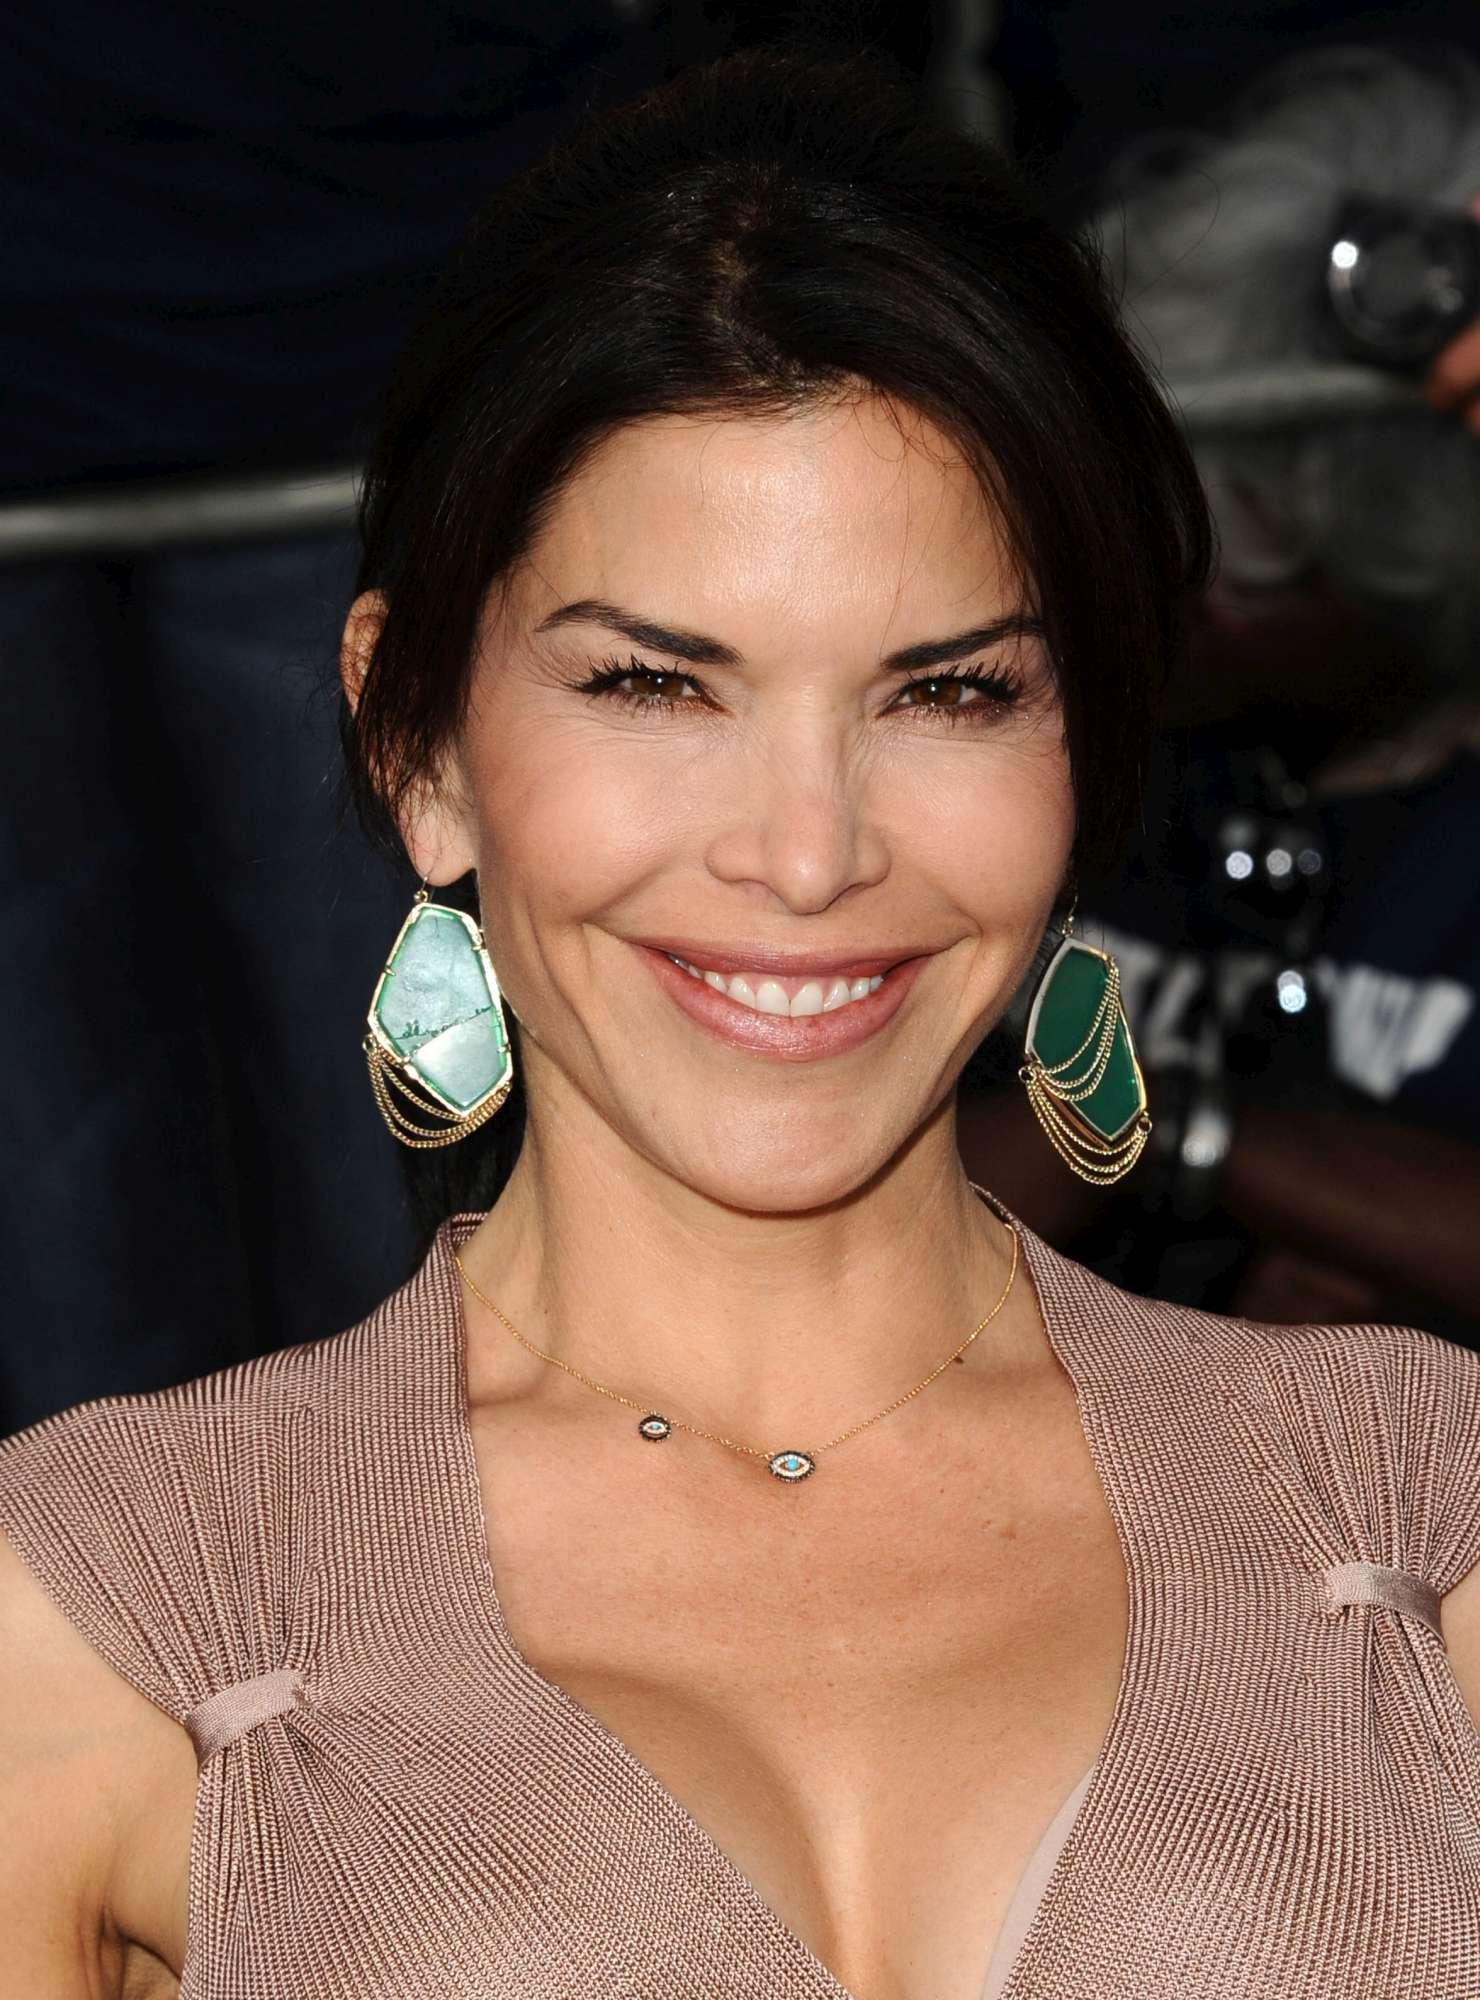 Lauren Sanchez, ecco chi ha fatto perdere la testa a Mr. Amazon